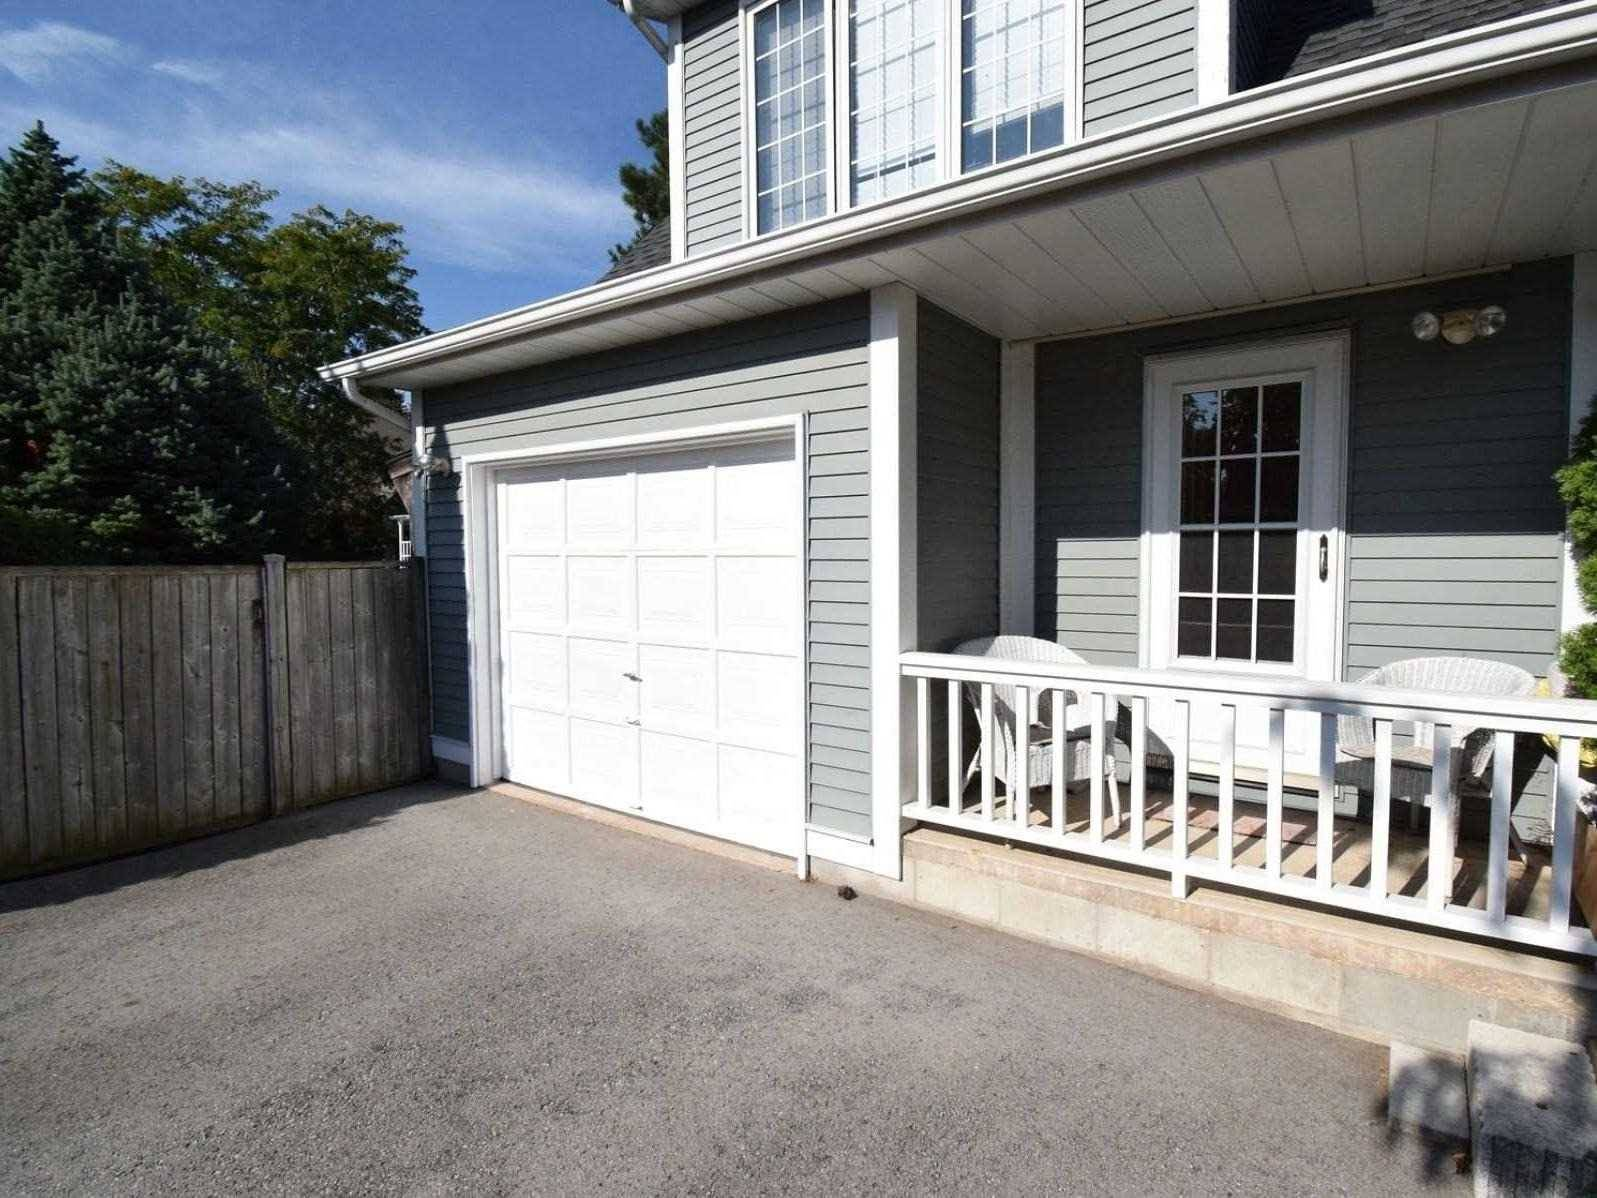 House for sale at 202 Anne St Niagara-on-the-lake Ontario - MLS: X4667499